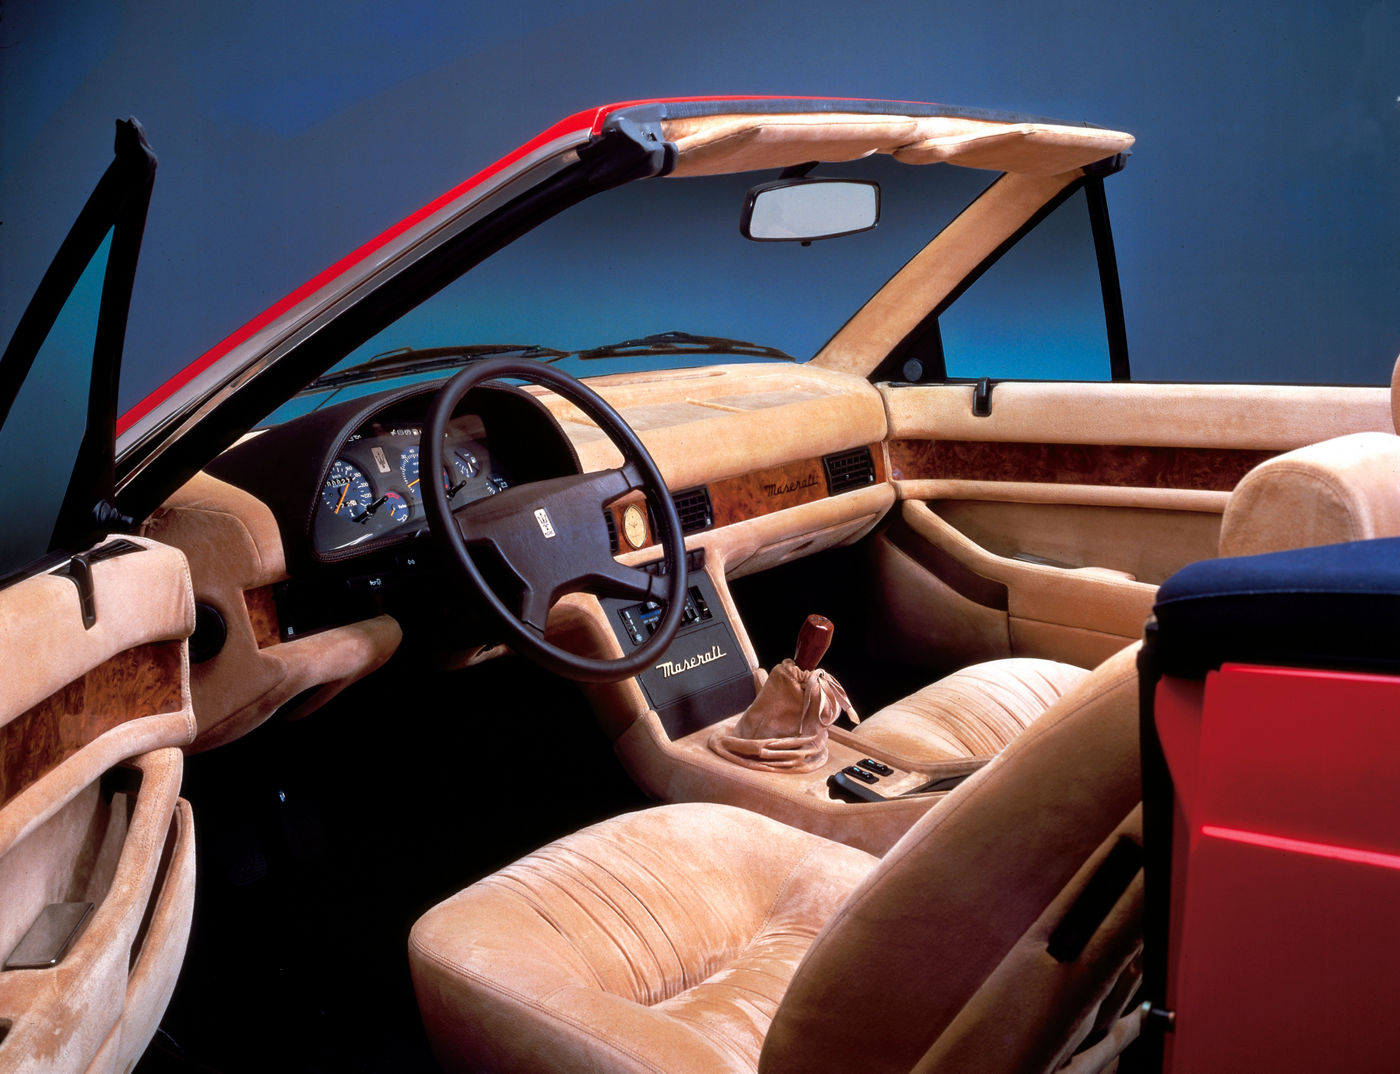 1989 Maserati Biturbo Spyder - interior view of the classic cabriolet model in red